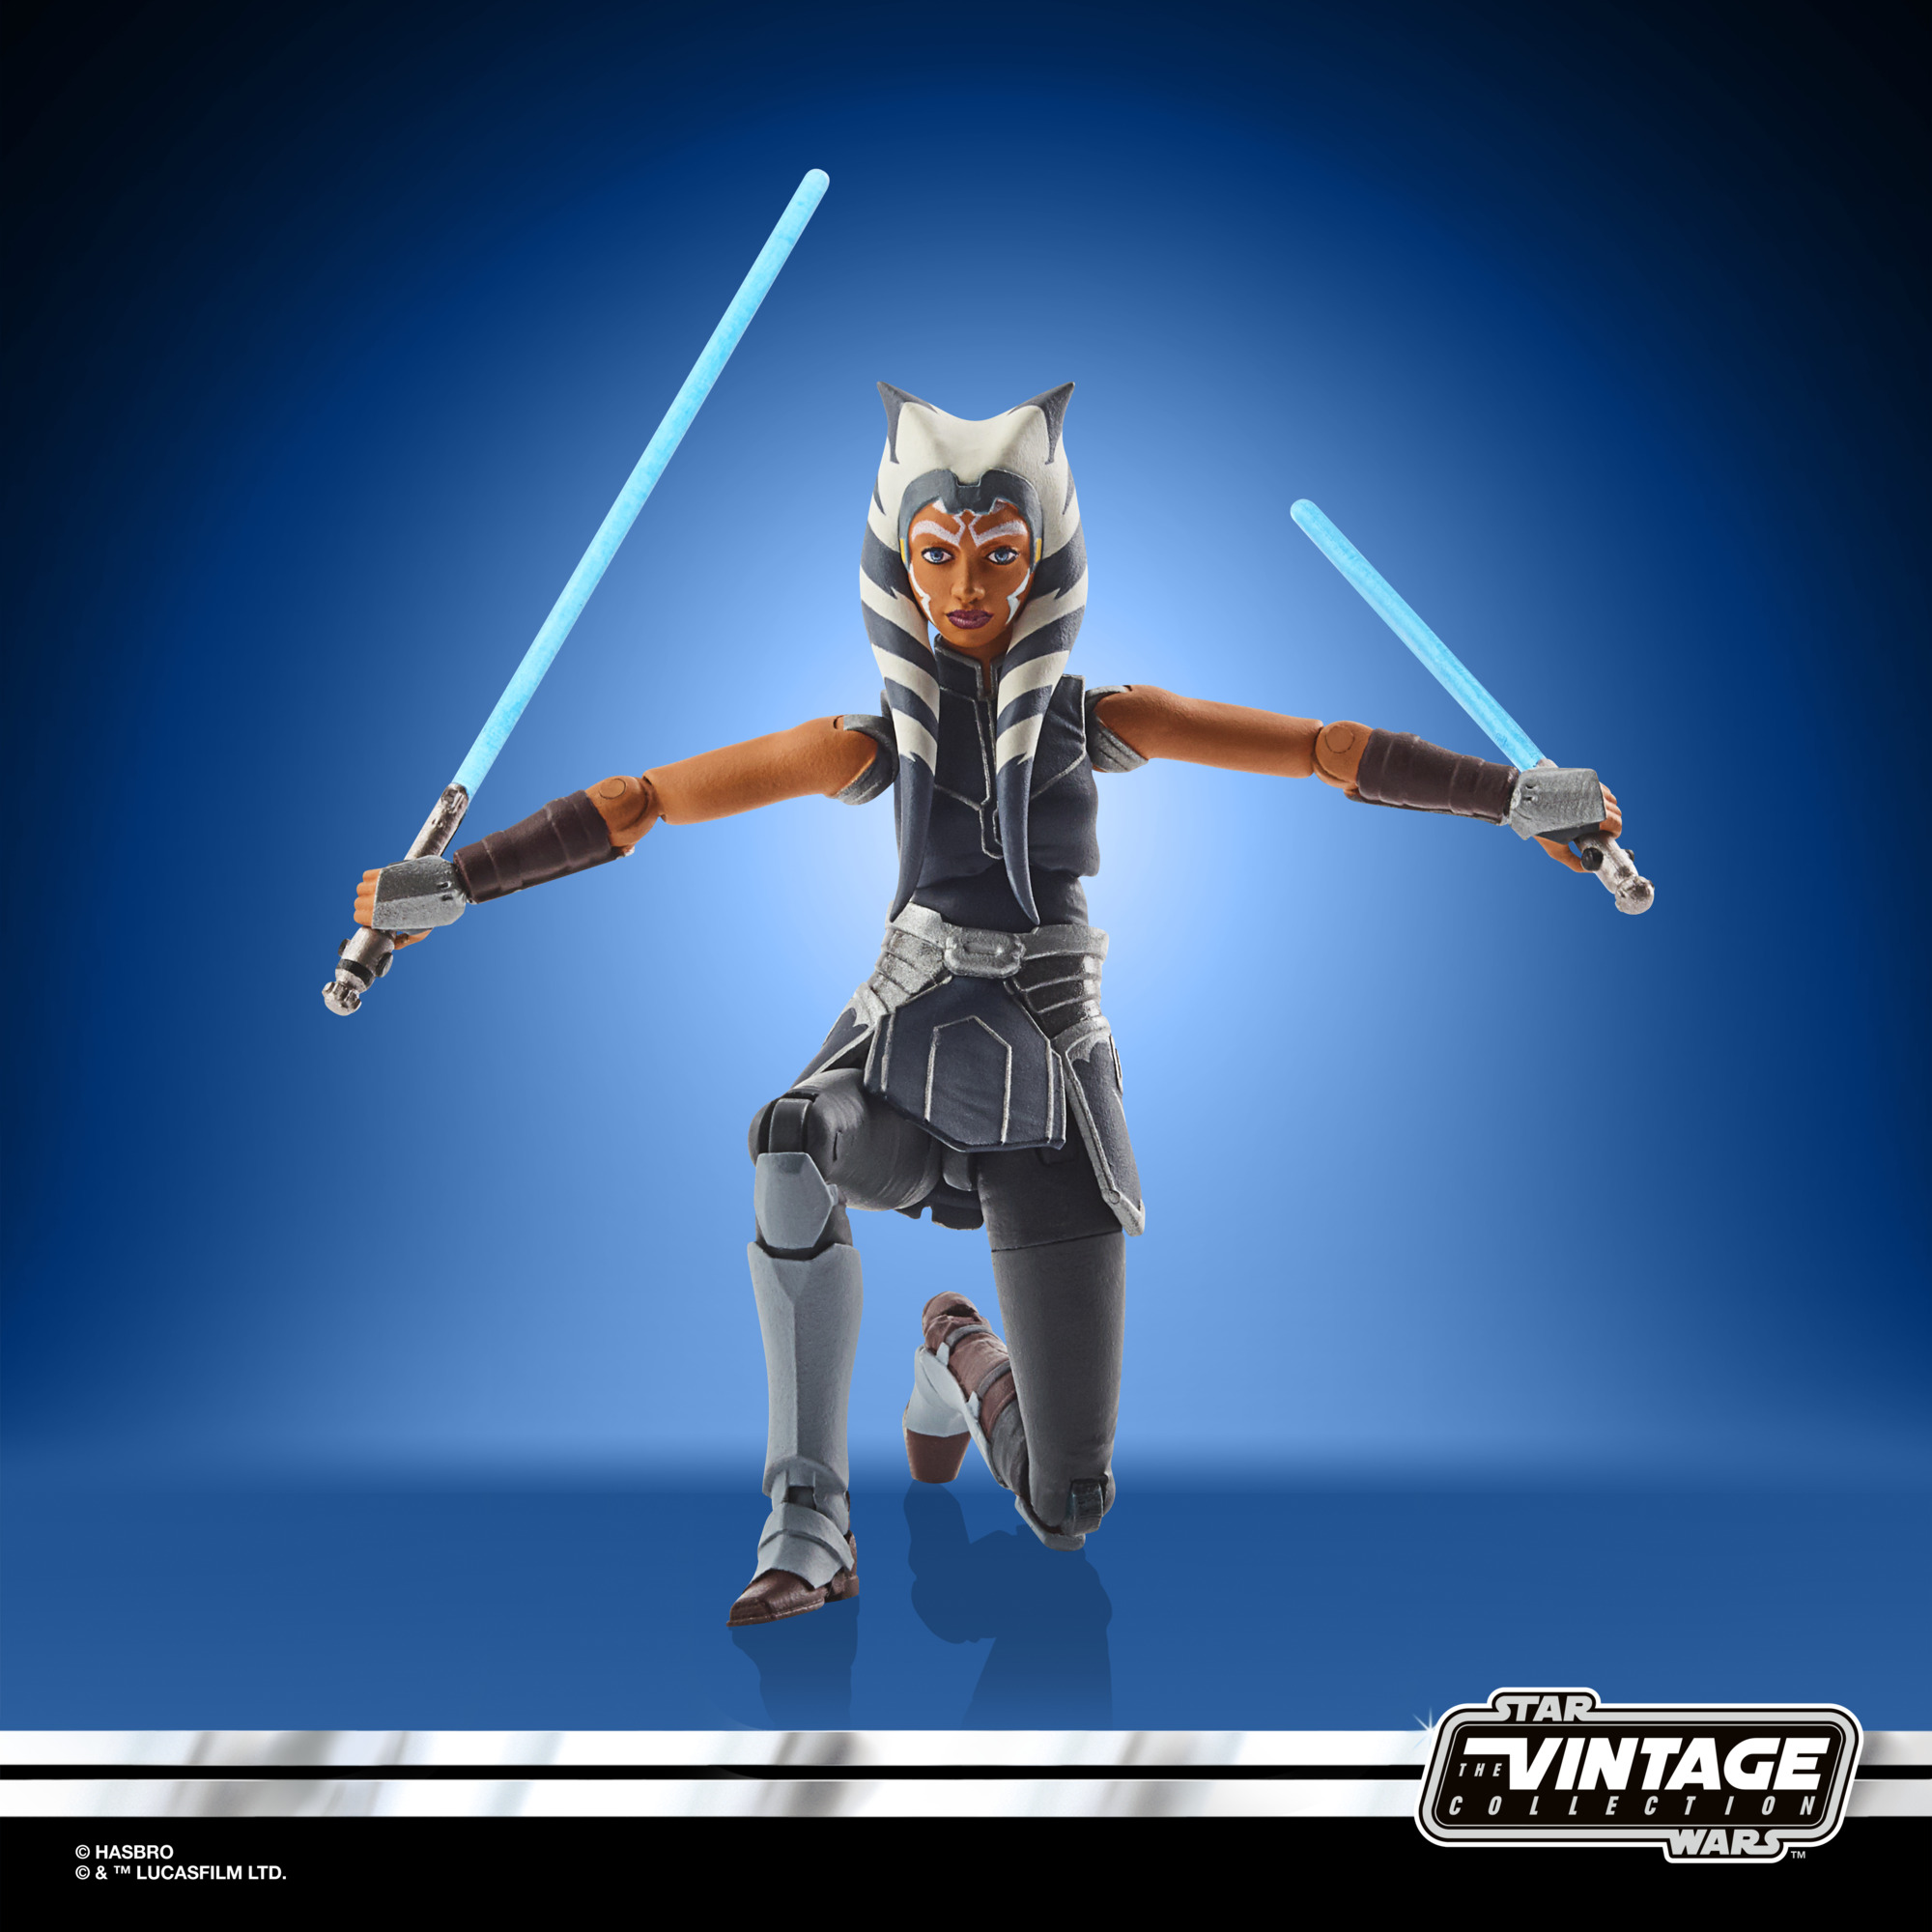 STAR WARS THE VINTAGE COLLECTION 3.75-INCH AHSOKA TANO (MANDALORE) Figure – oop (4)